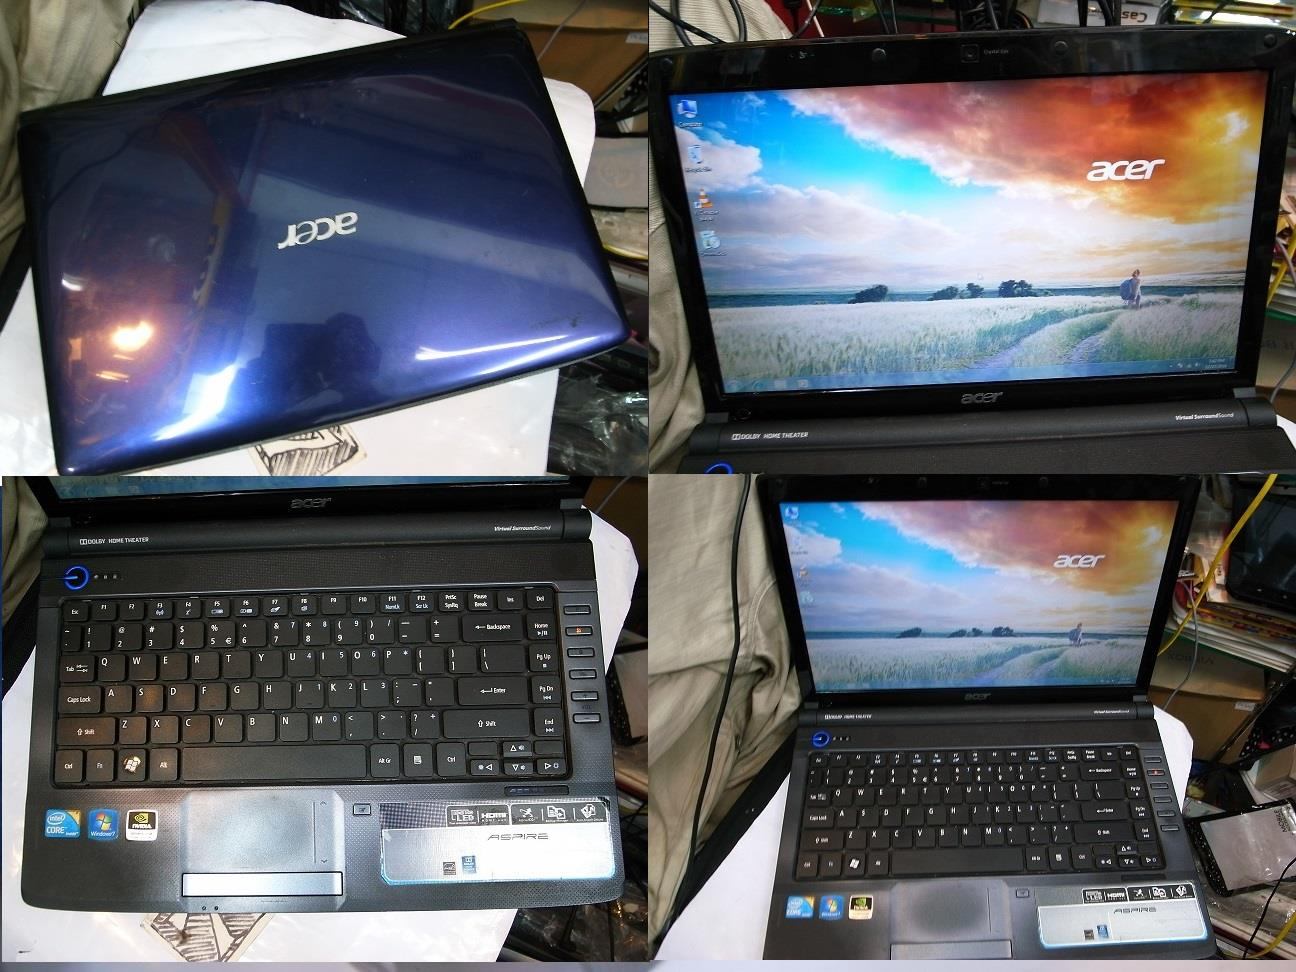 Acer Aspire 4740g i5 2.4GHz 500gb Geforce Laptop Notebook Rm890